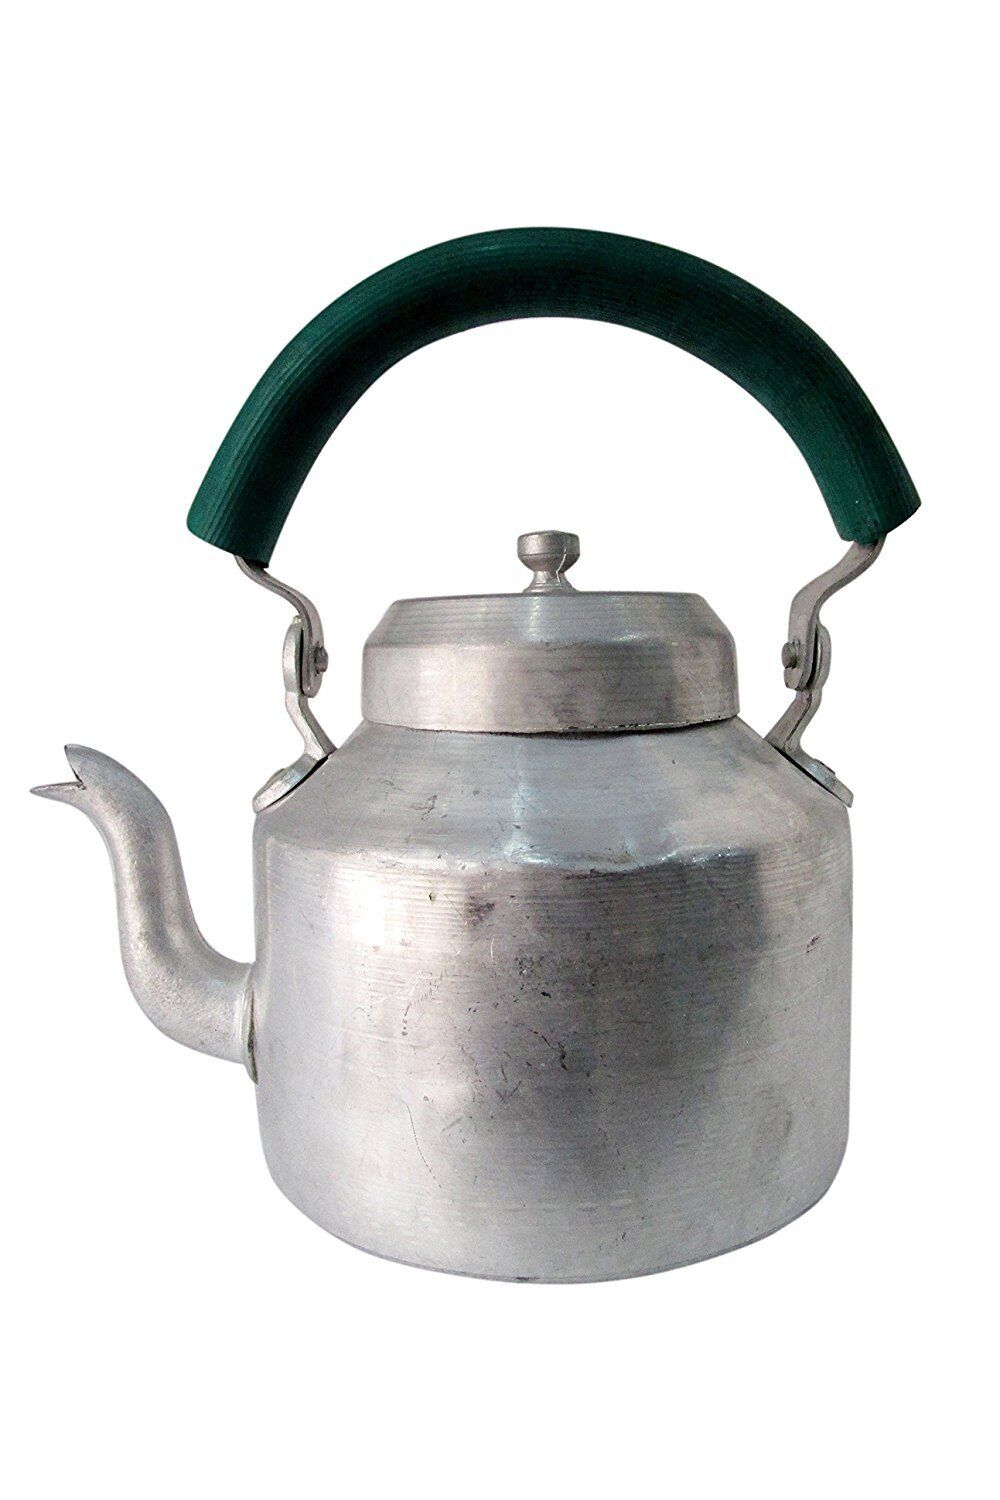 Traditional Indian Tea Kettle 2 Ltr Aluminum Chai Coffee Ketali Serving Teapot